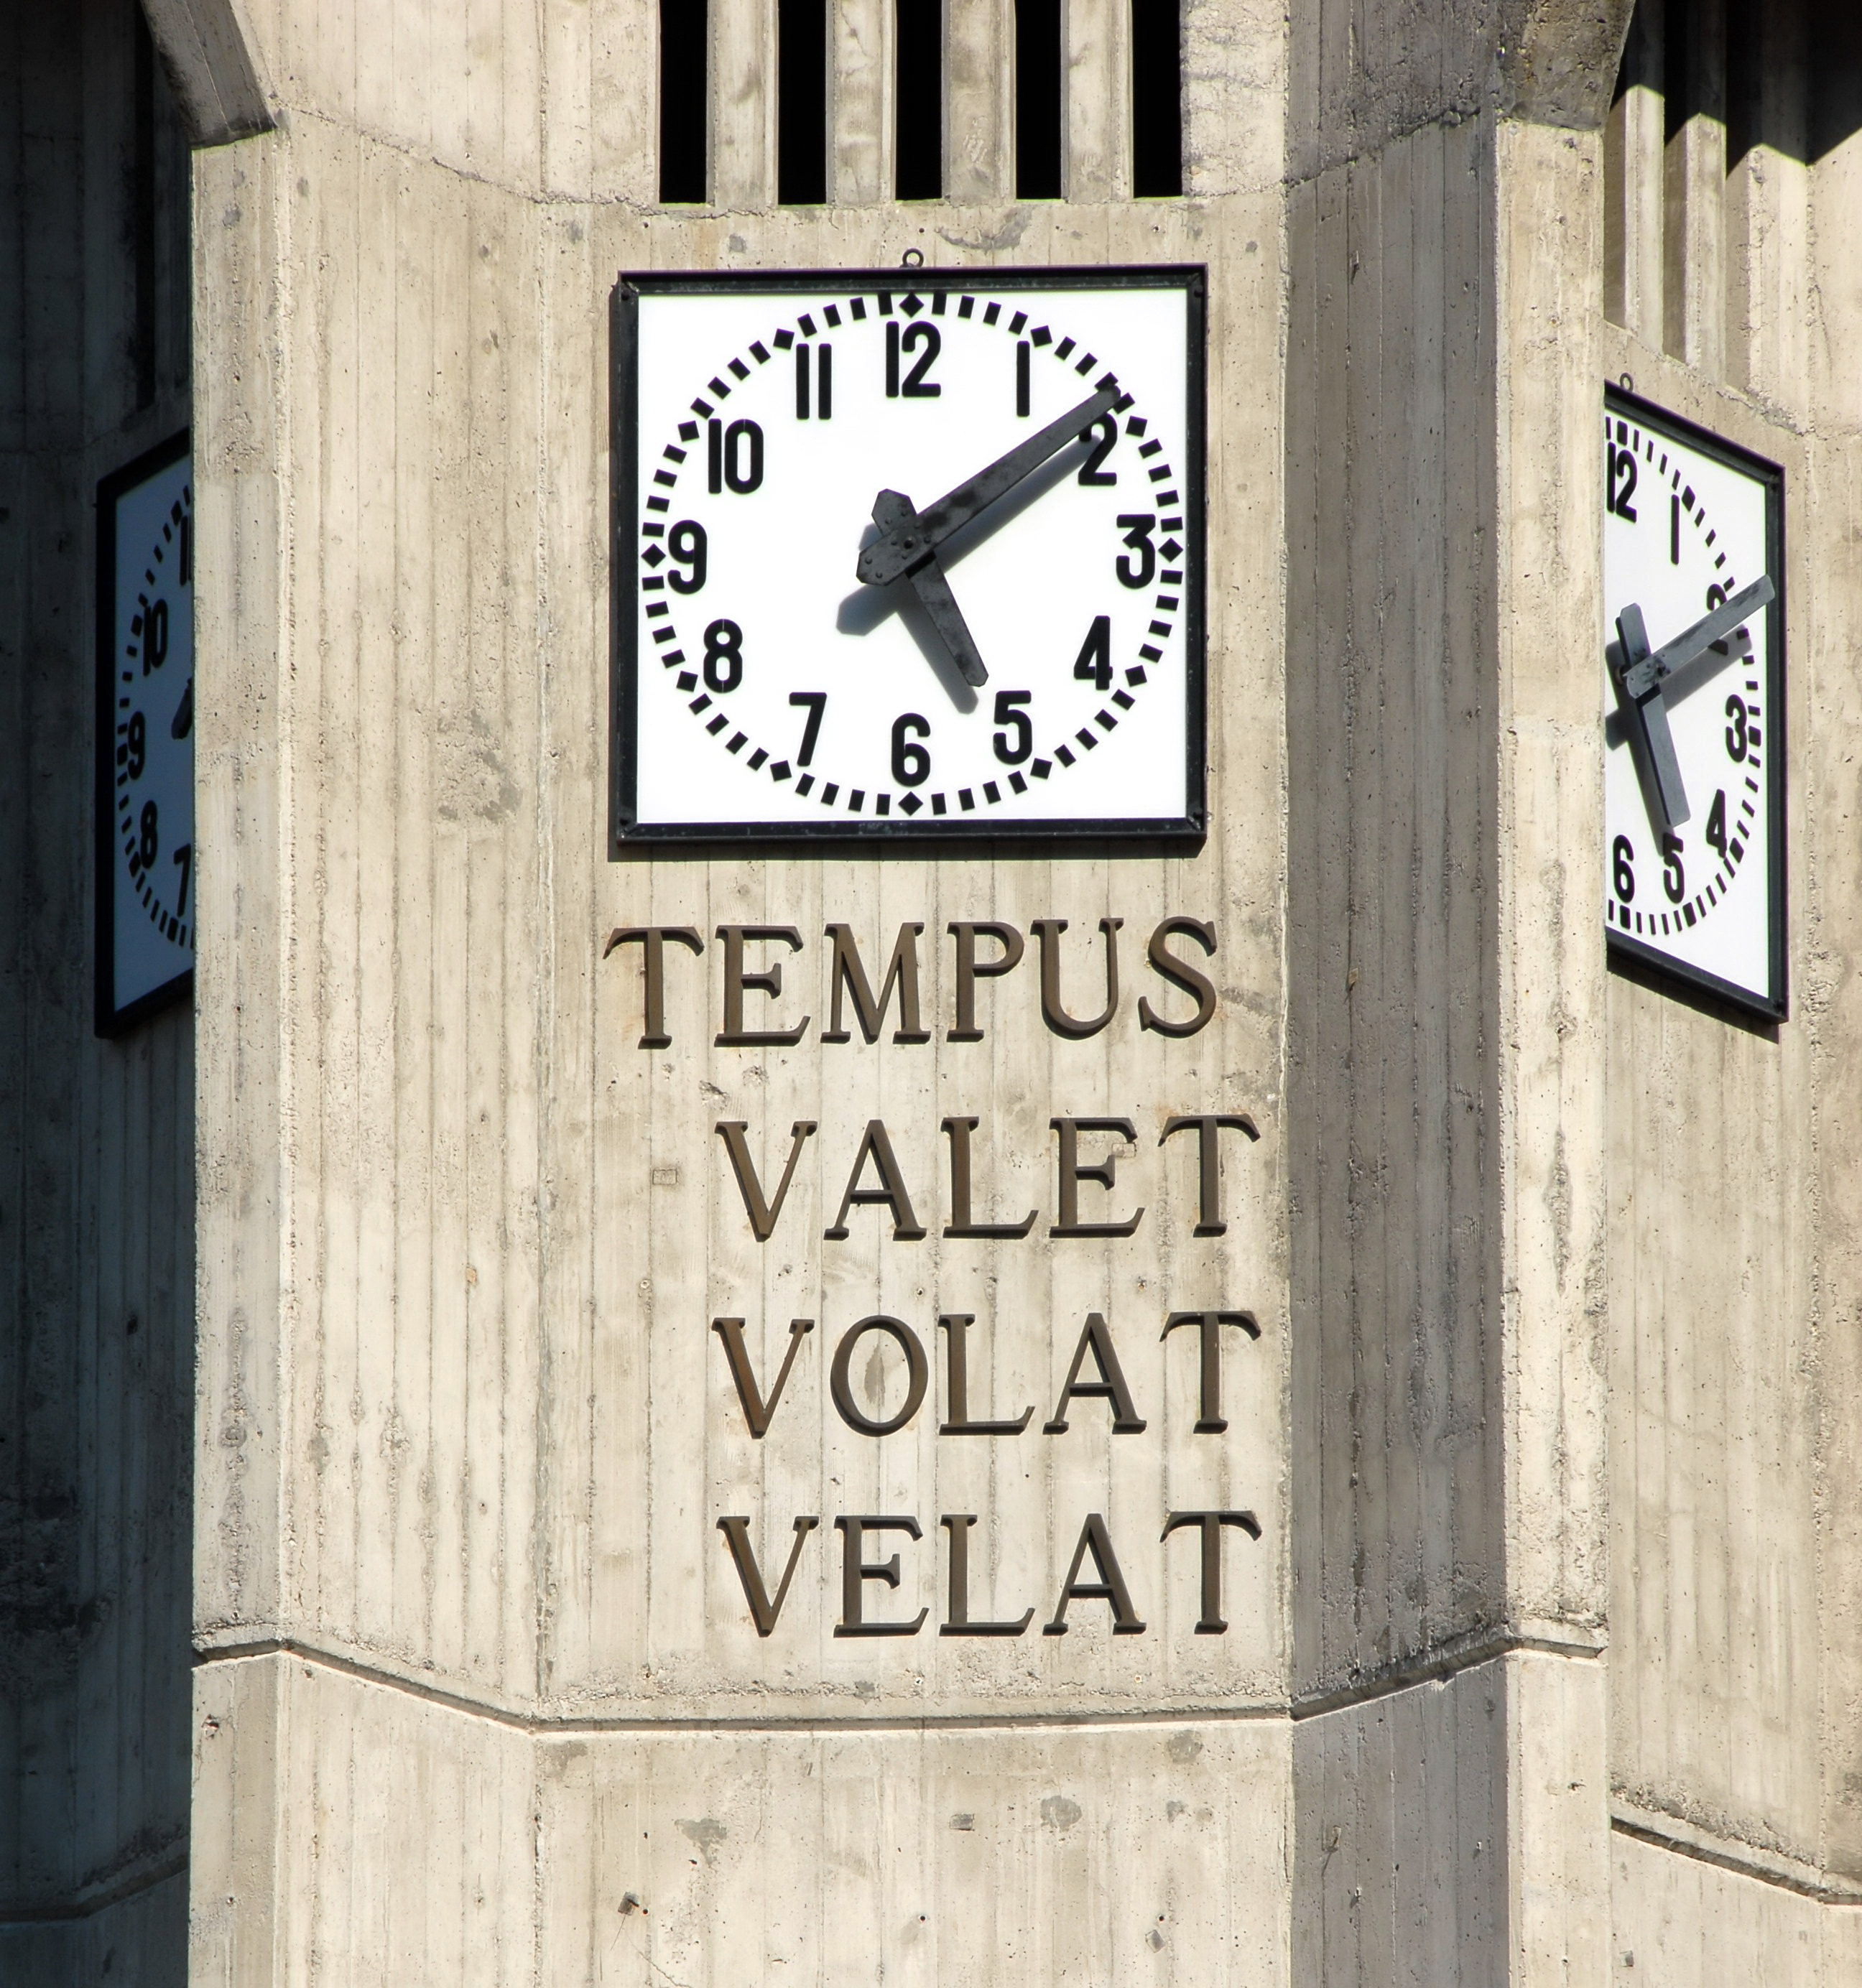 Inscription: Tempus valet volat velat (trad. time is worth, flies, clouds)